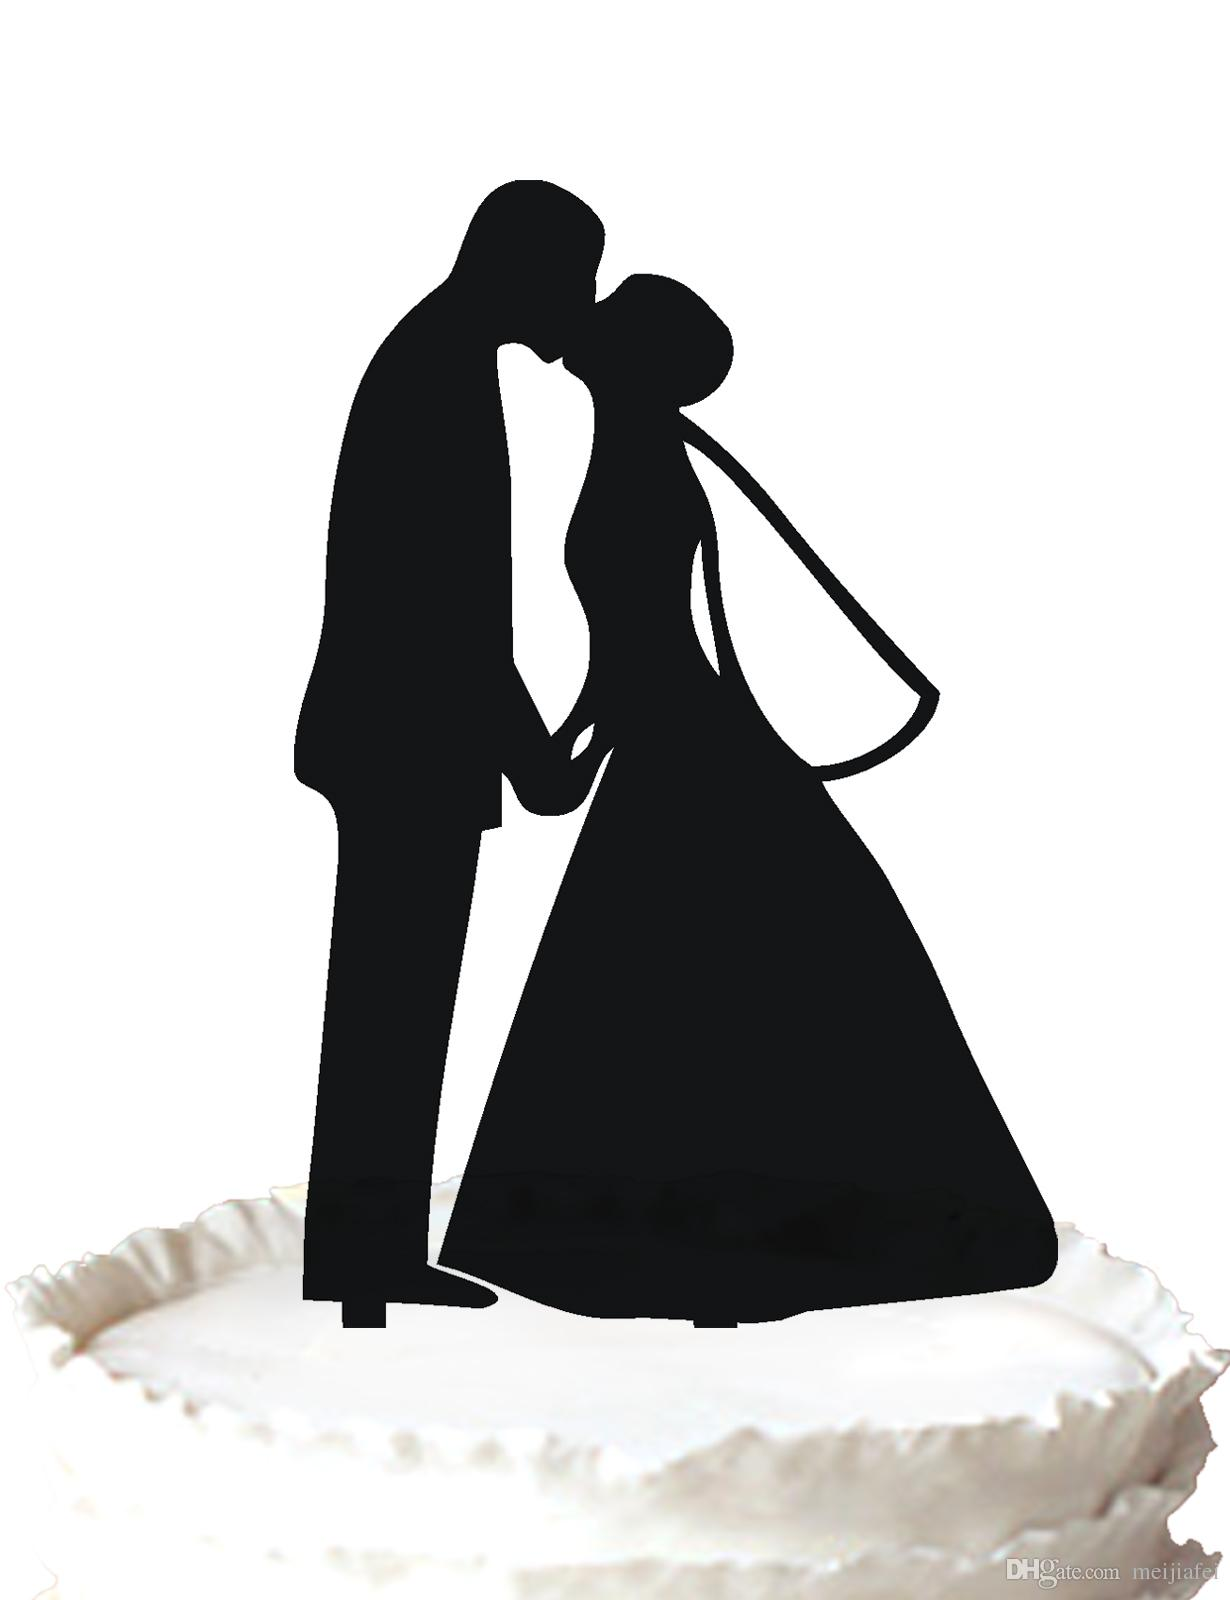 2018 wedding cake topperromantic bride and groom kissing wedding 2018 wedding cake topperromantic bride and groom kissing wedding silhouette cake topperfor option from meijiafei 191 dhgate junglespirit Gallery